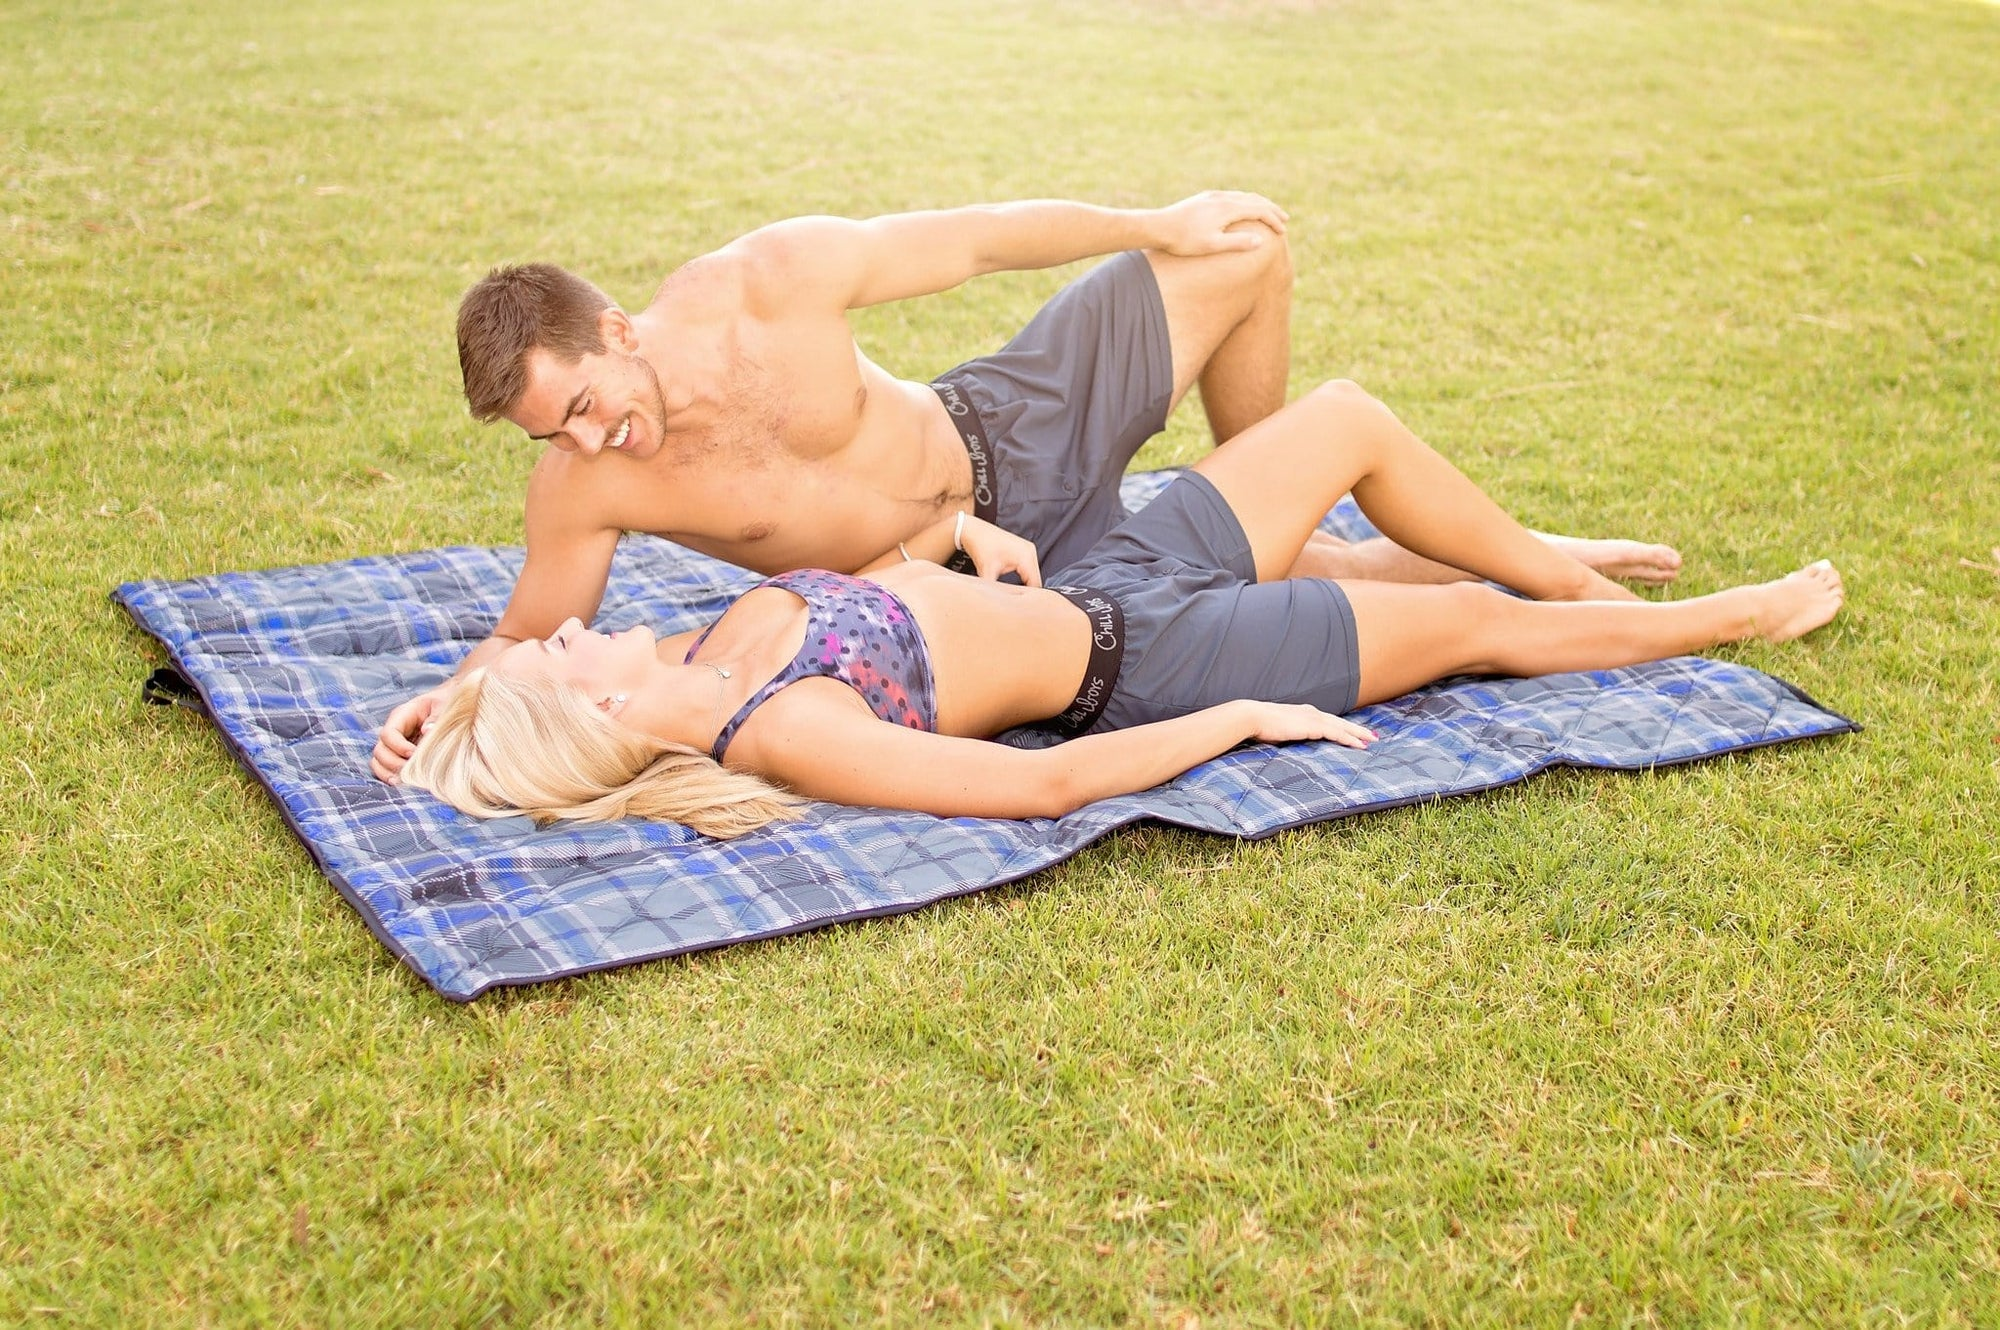 Guy and girl wearing chill boys boxers while laying on blanket